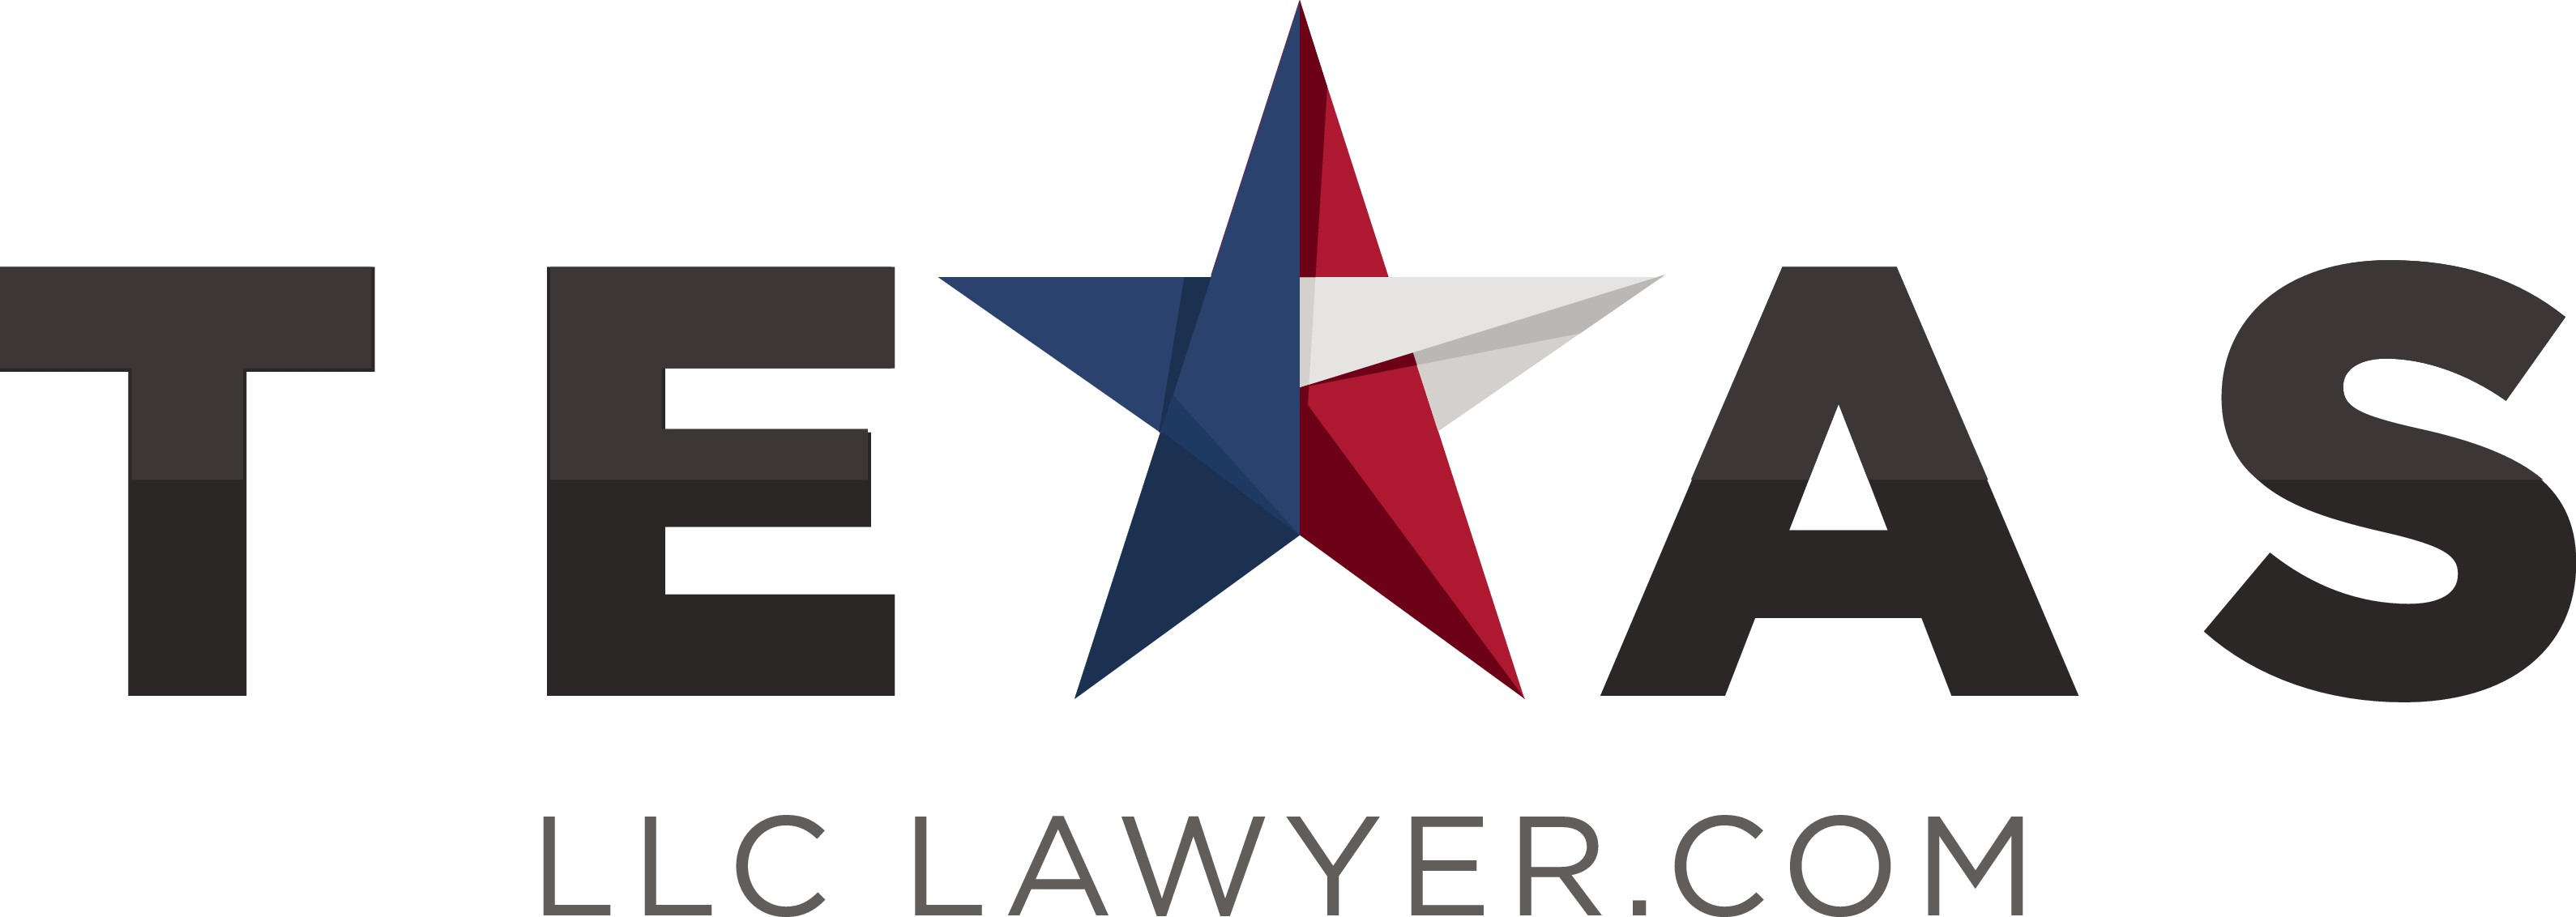 Create a logo for new website: TexasLLCLawyer.com